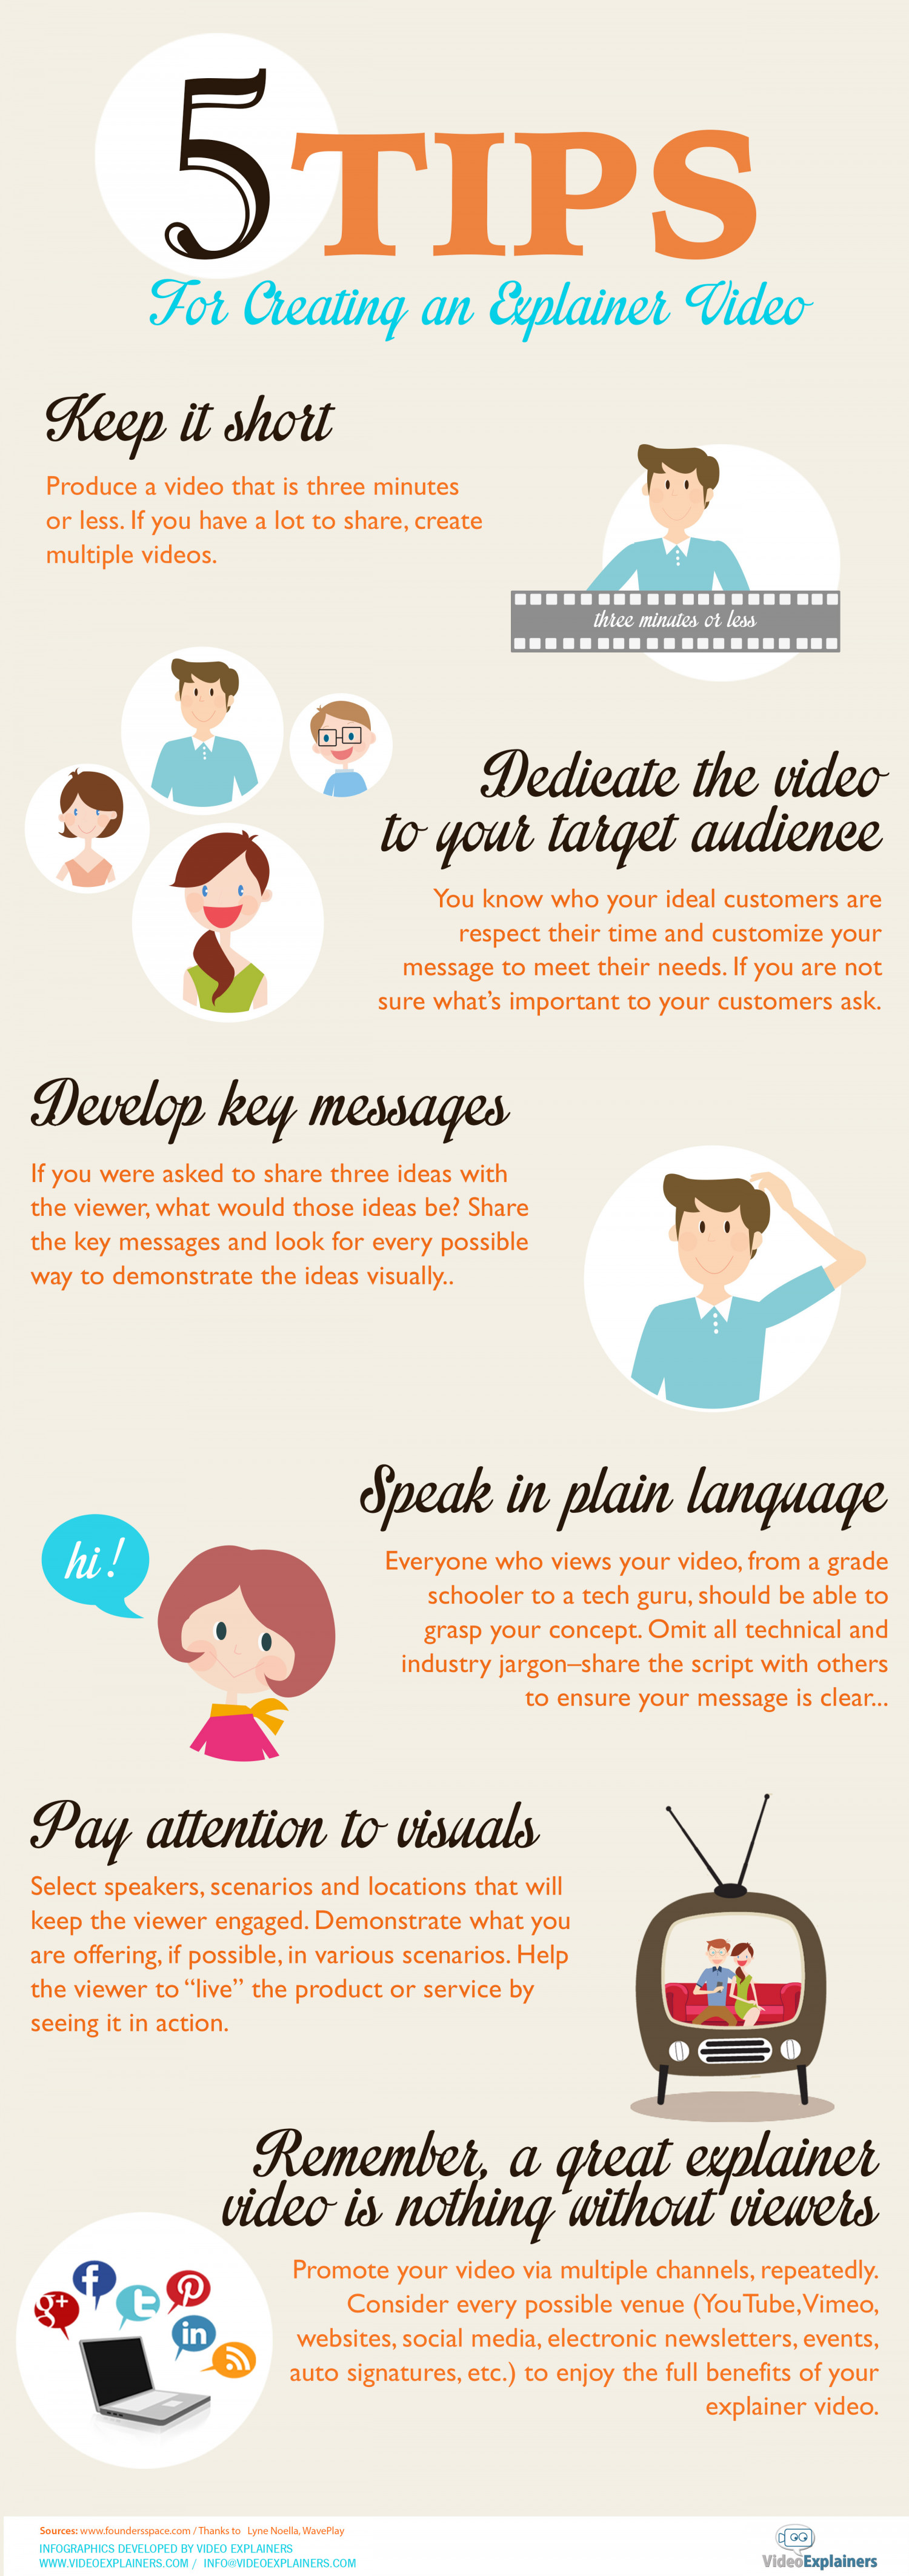 5 Tips for Creating an Explainer Video Infographic